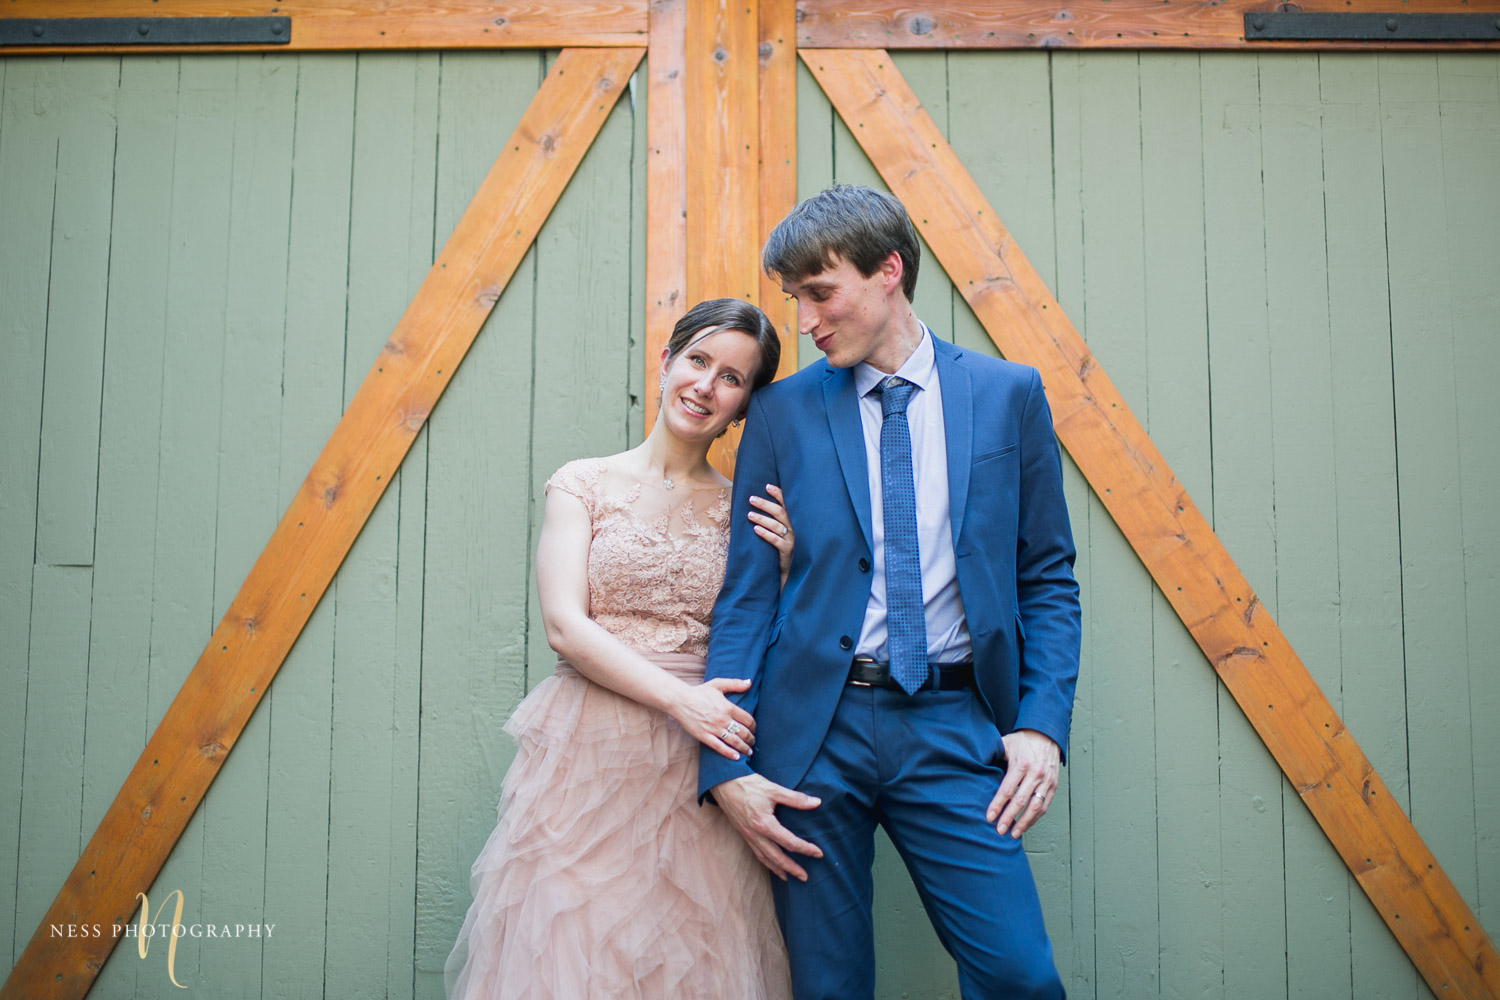 bride hugging the groom in plateau mont royal for elopement wedding photos